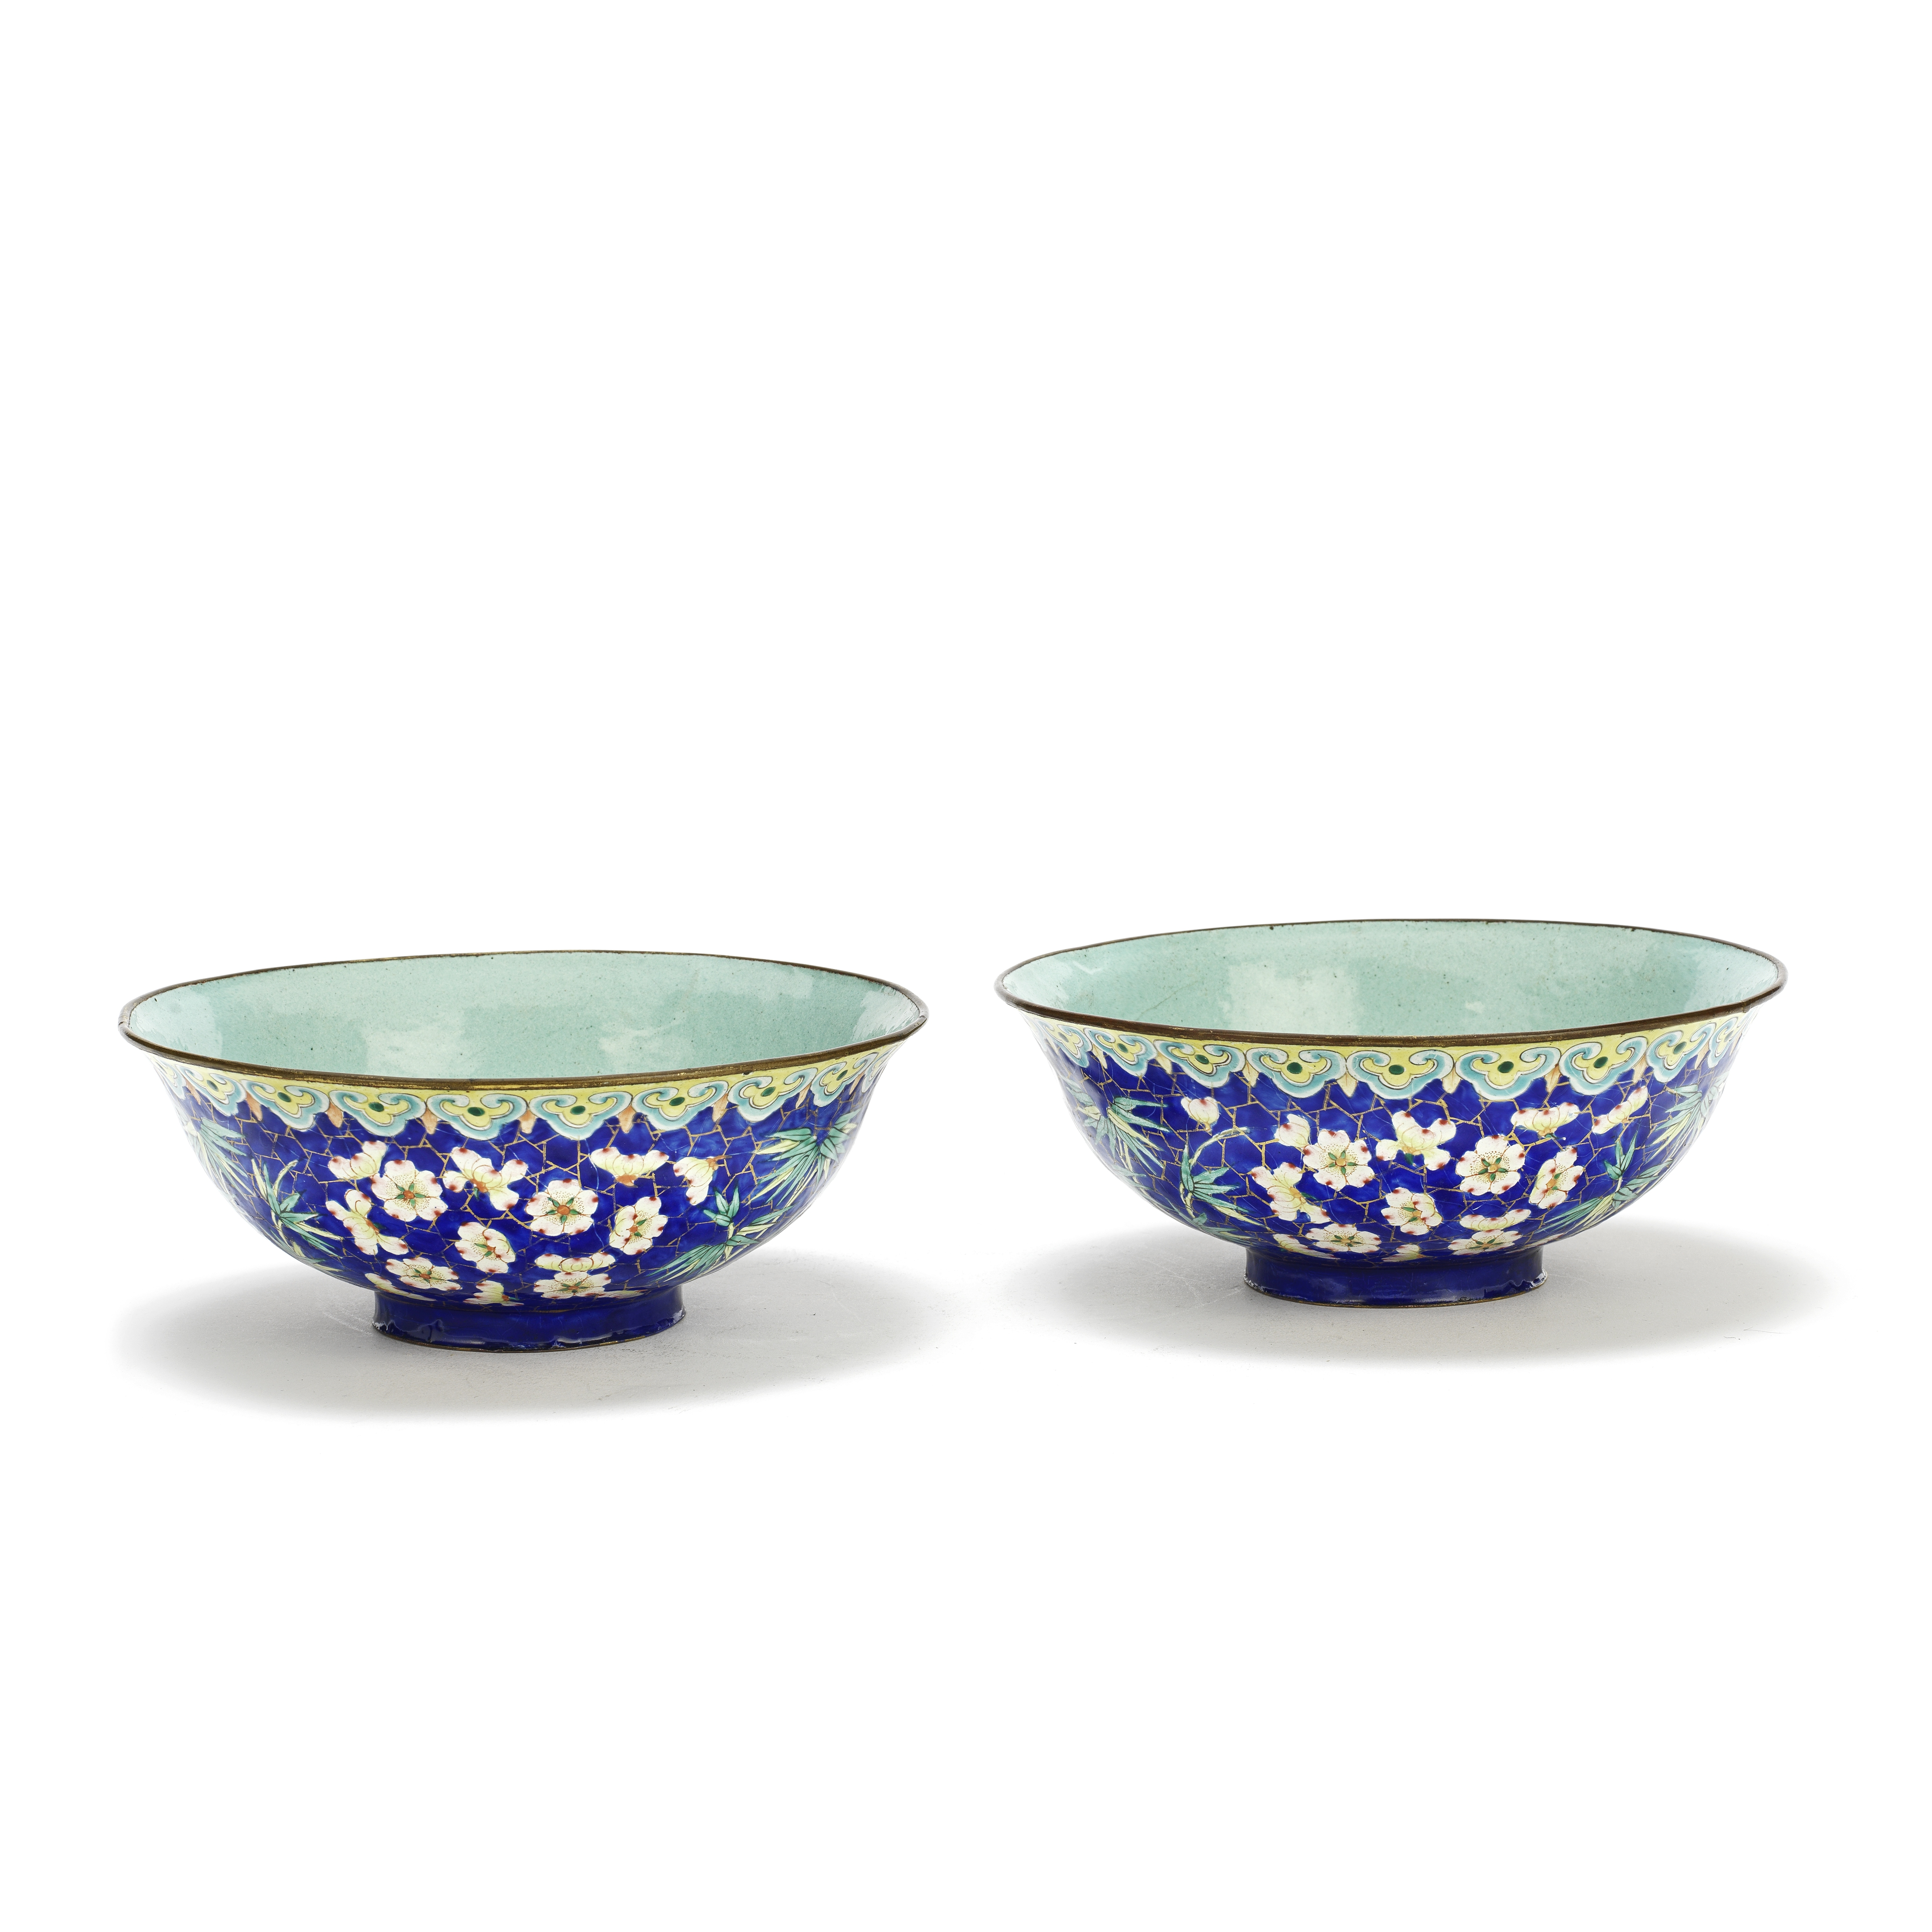 A PAIR OF PAINTED ENAMEL BOWLS 19th century (2)